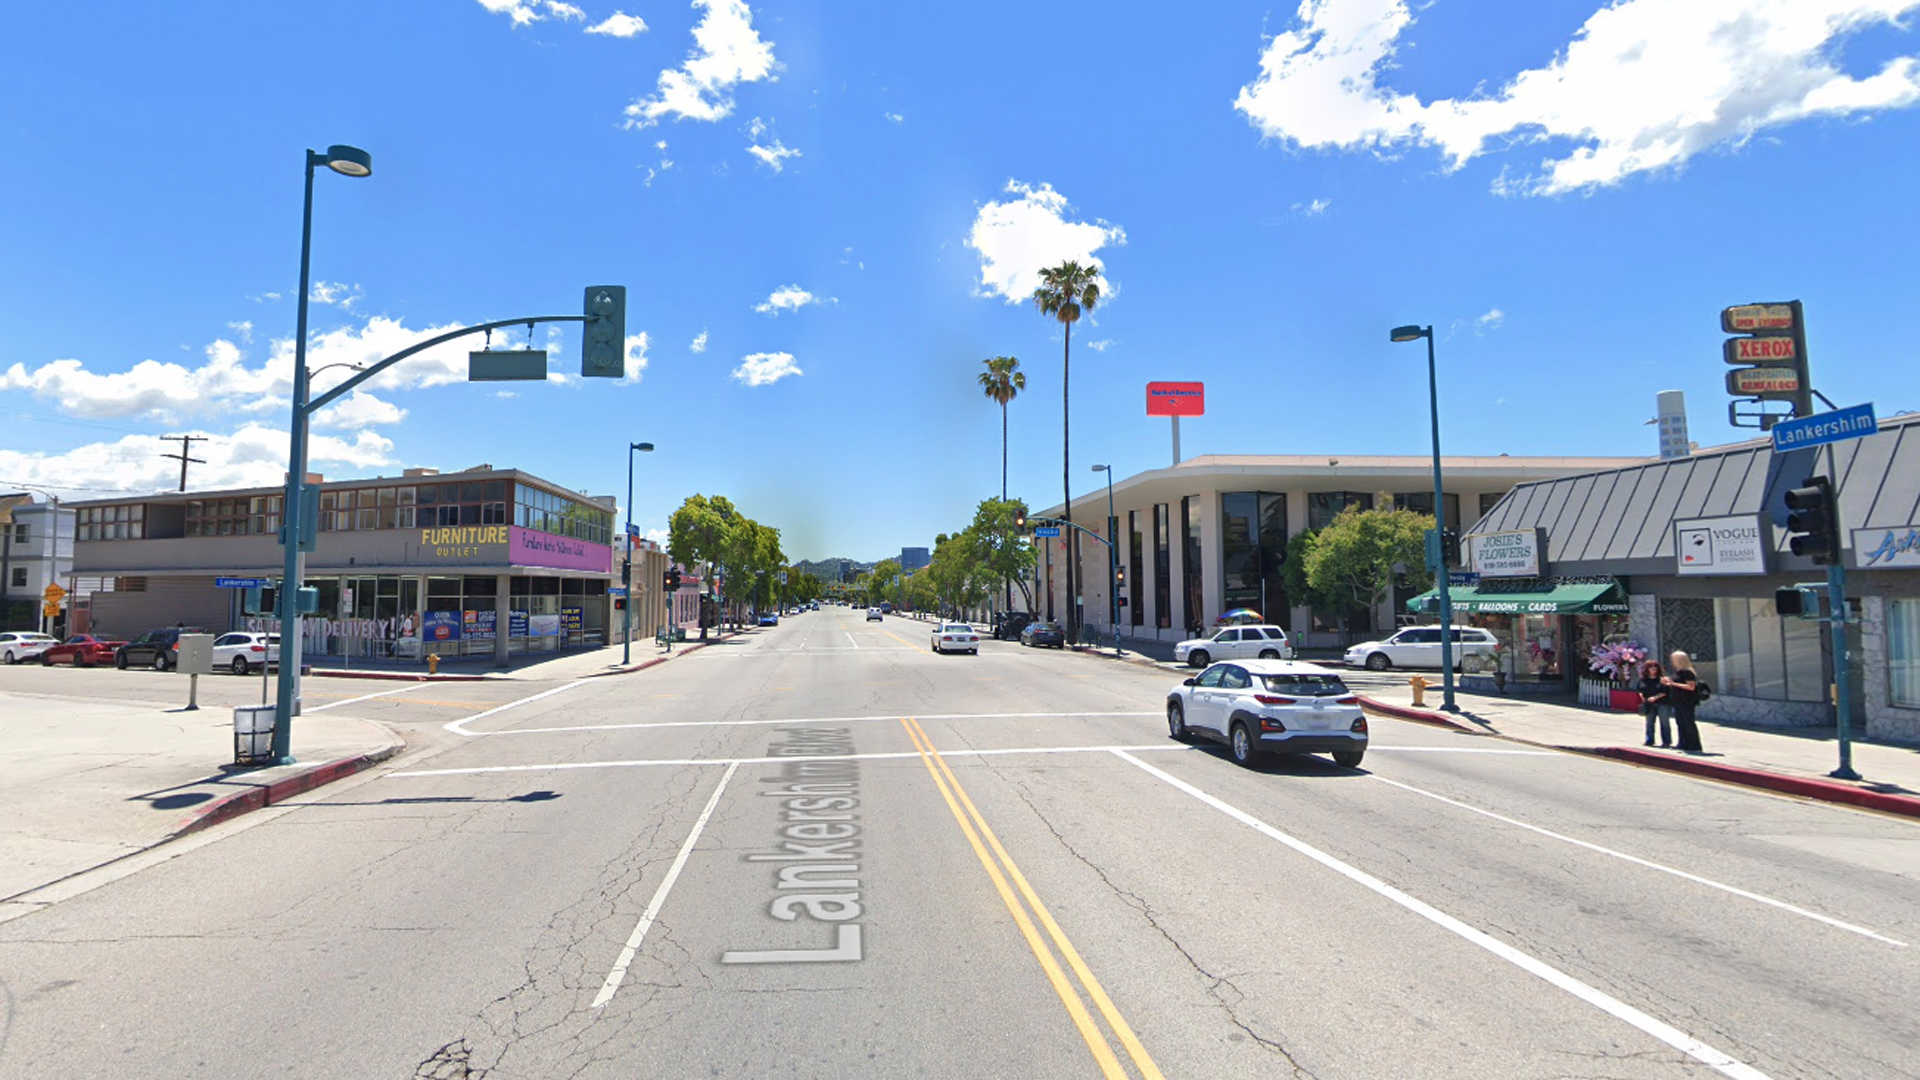 The intersection of Lankershim Boulevard and Hesby Street in North Hollywood is seen in a Google Maps Street View image.